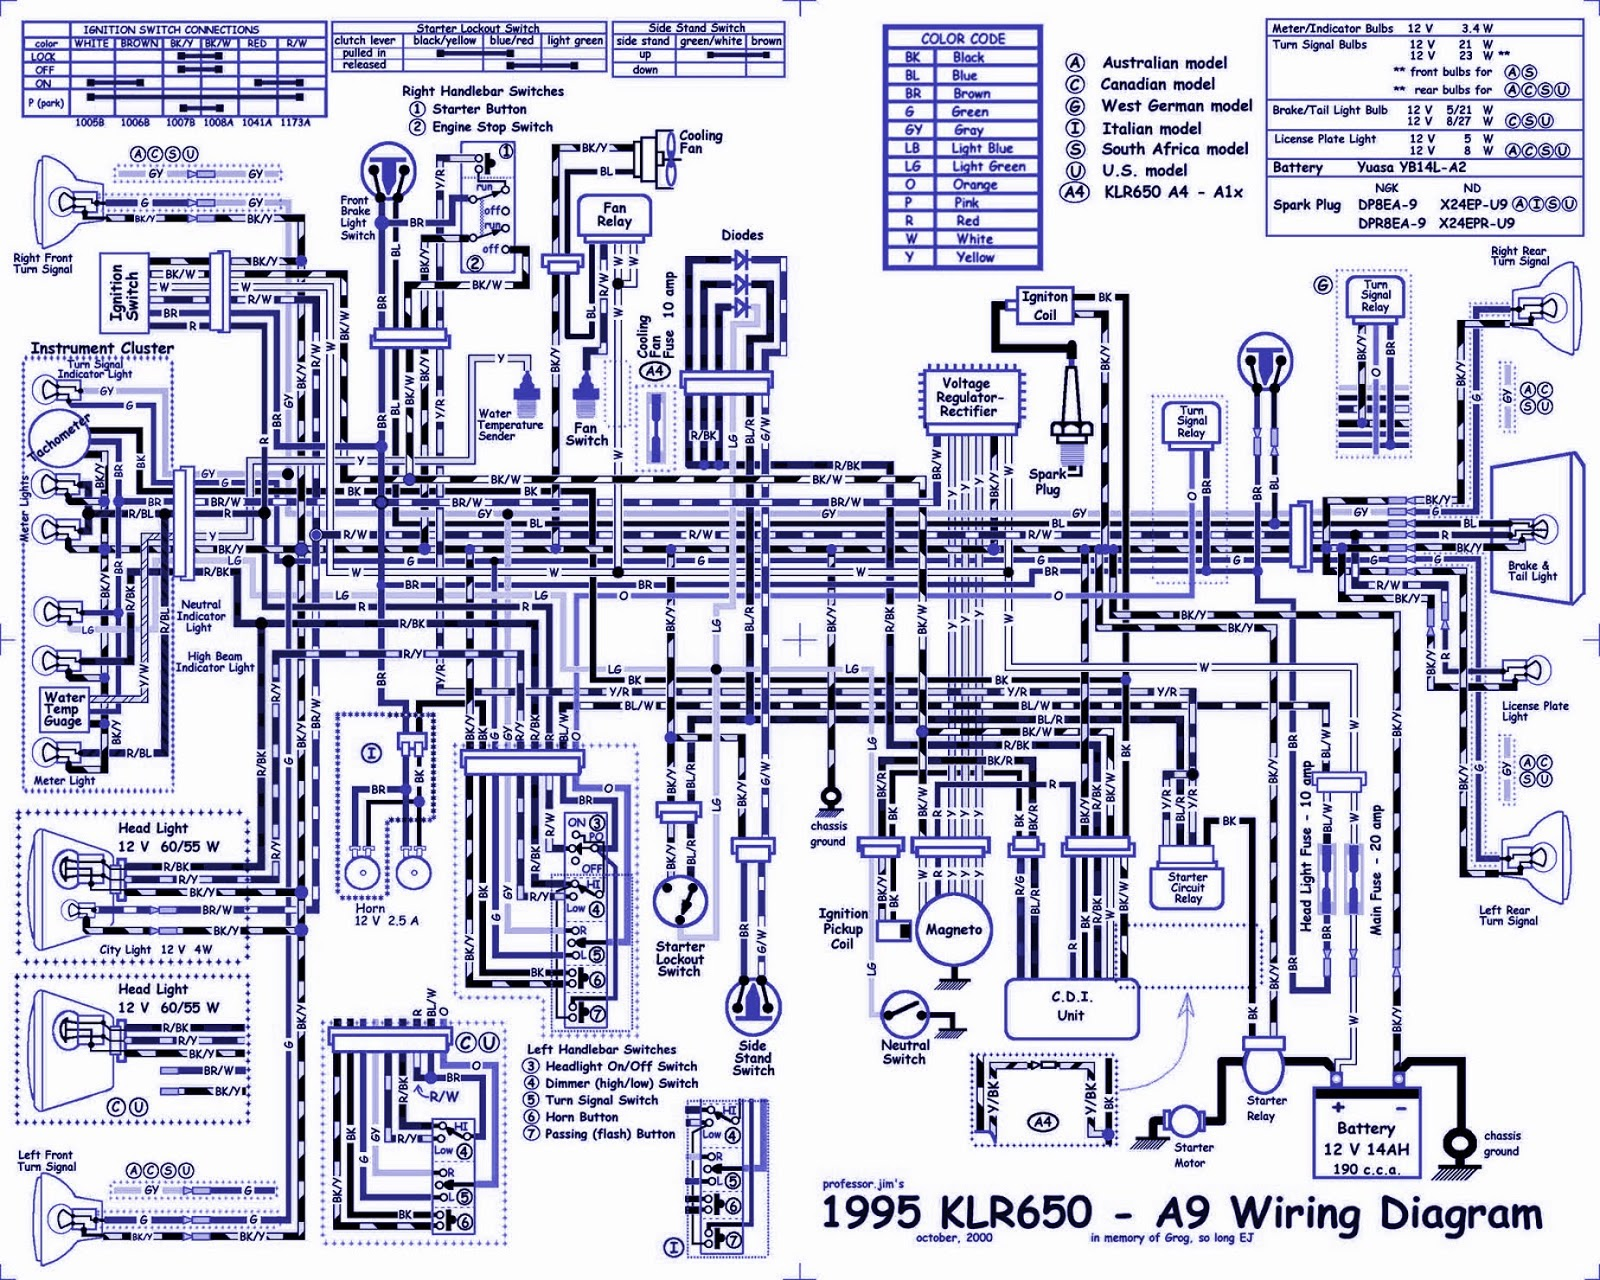 Chevrolet Monte Carlo Electrical Wiring Diagram